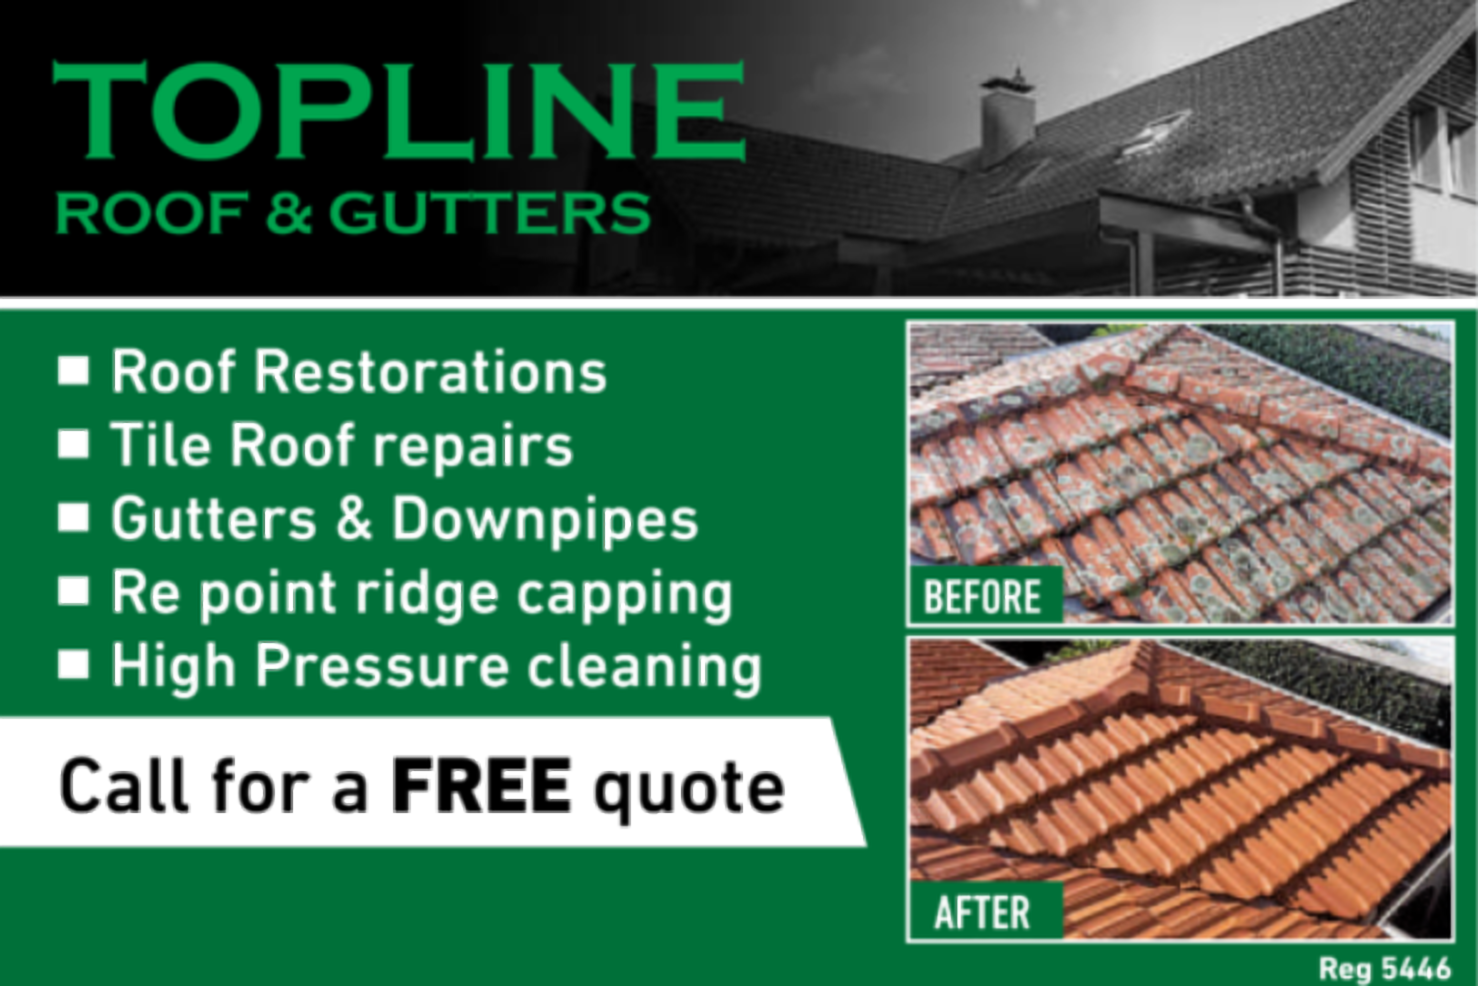 Topline Roof and Gutters